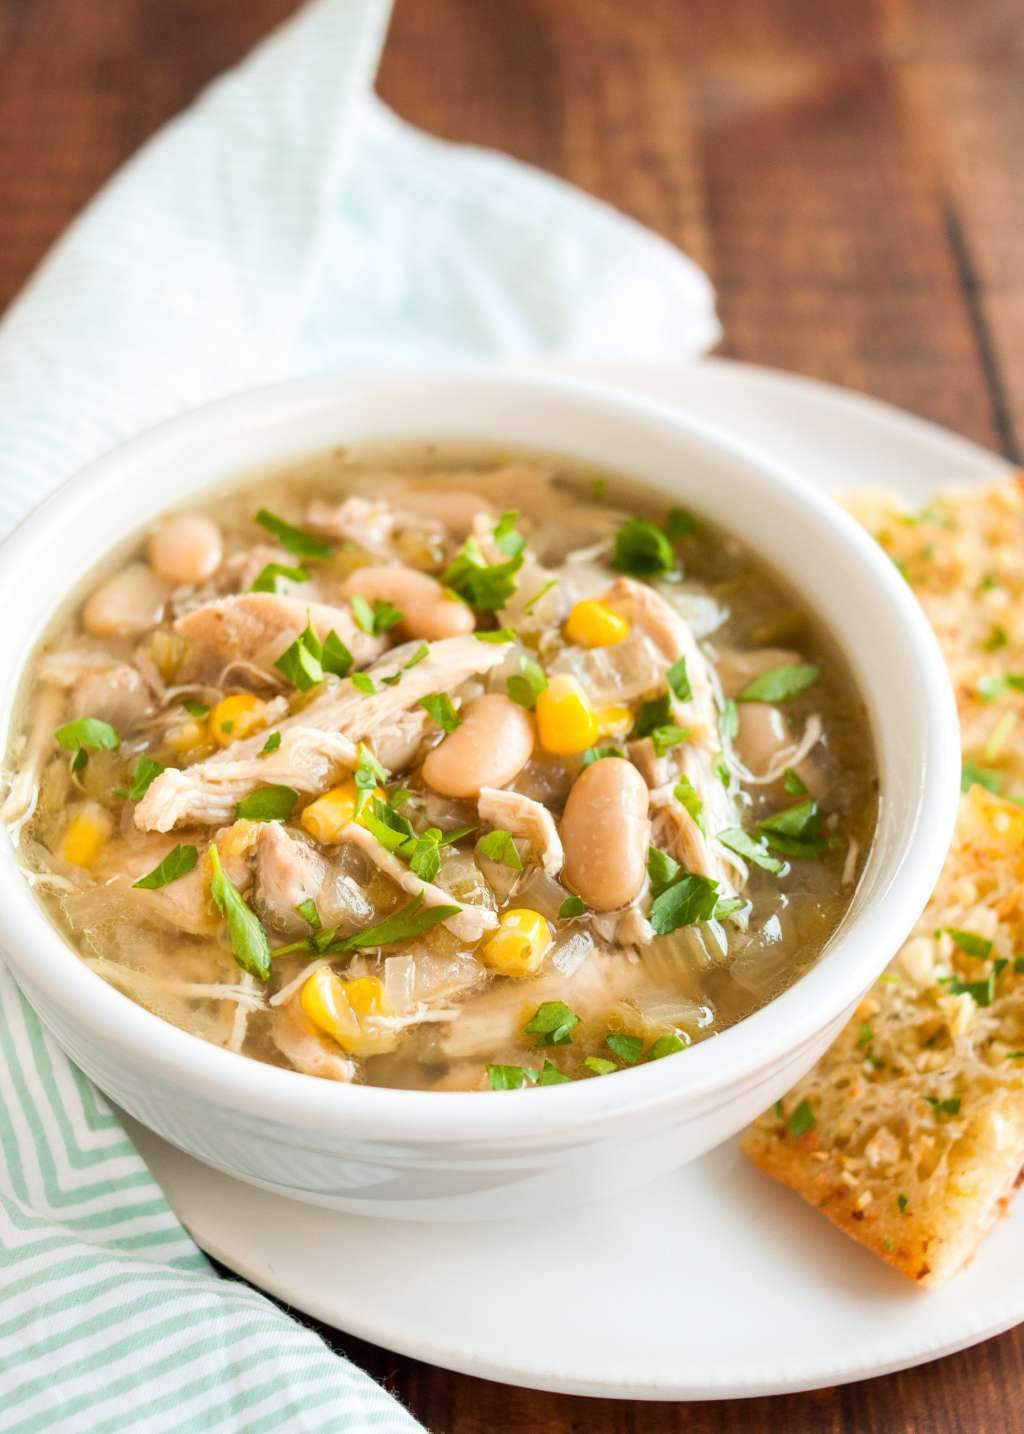 15 Soups to Make in the Slow Cooker and Eat All Week Long